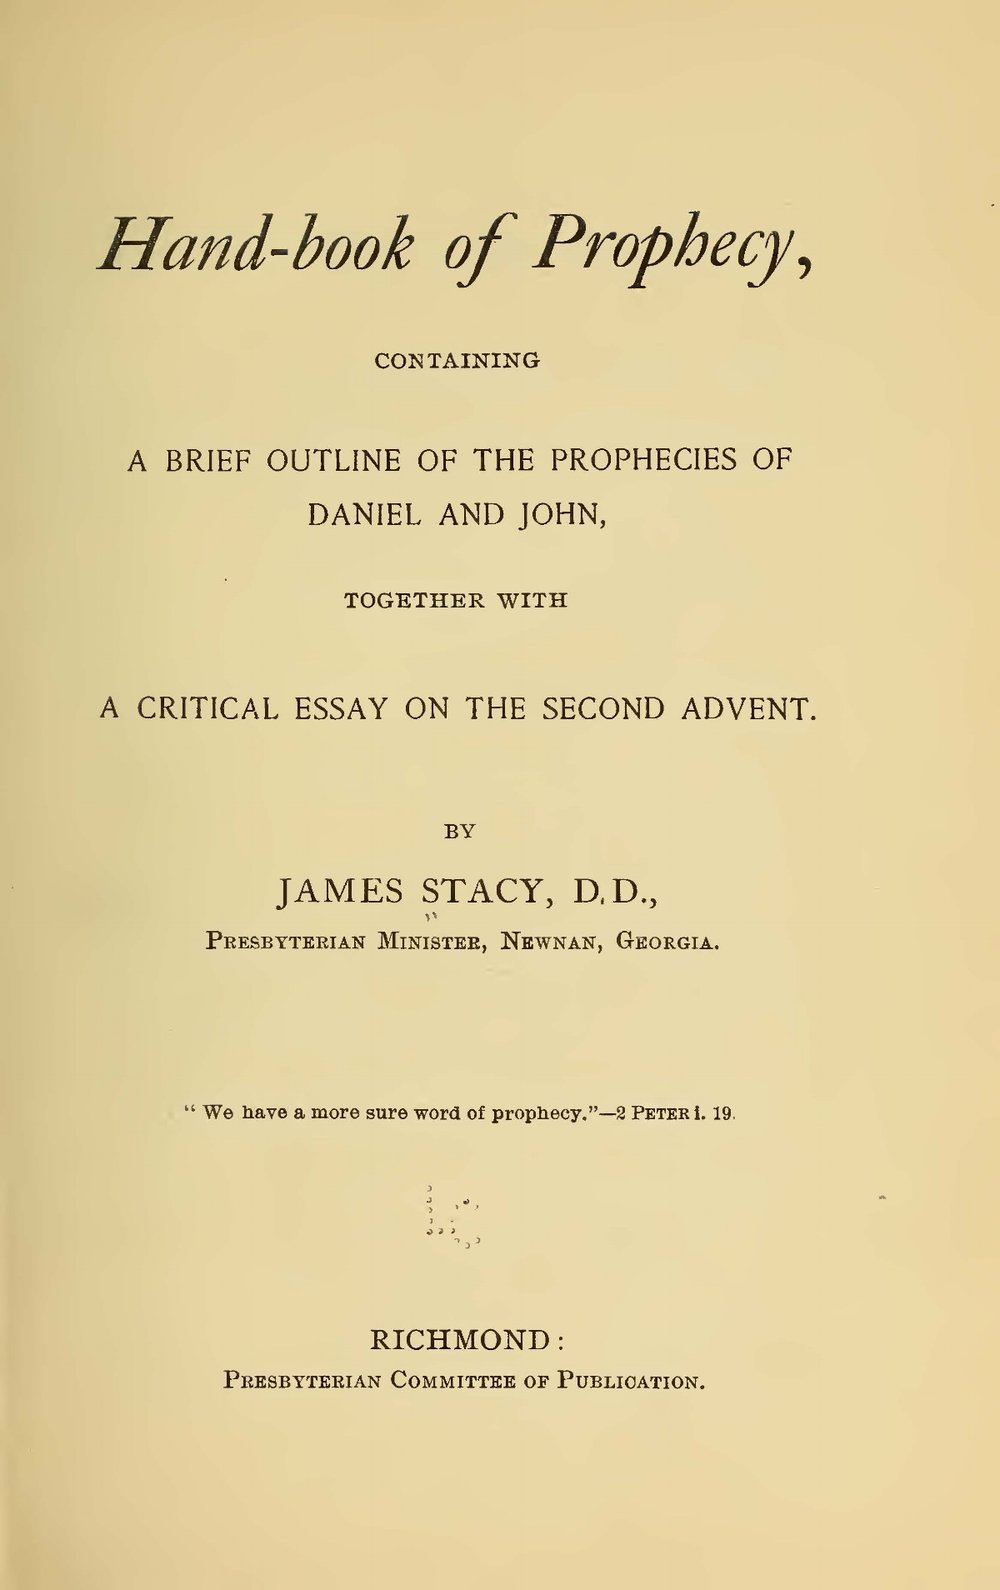 Stacy, James, Hand-Book of Prophecy Title Page.jpg